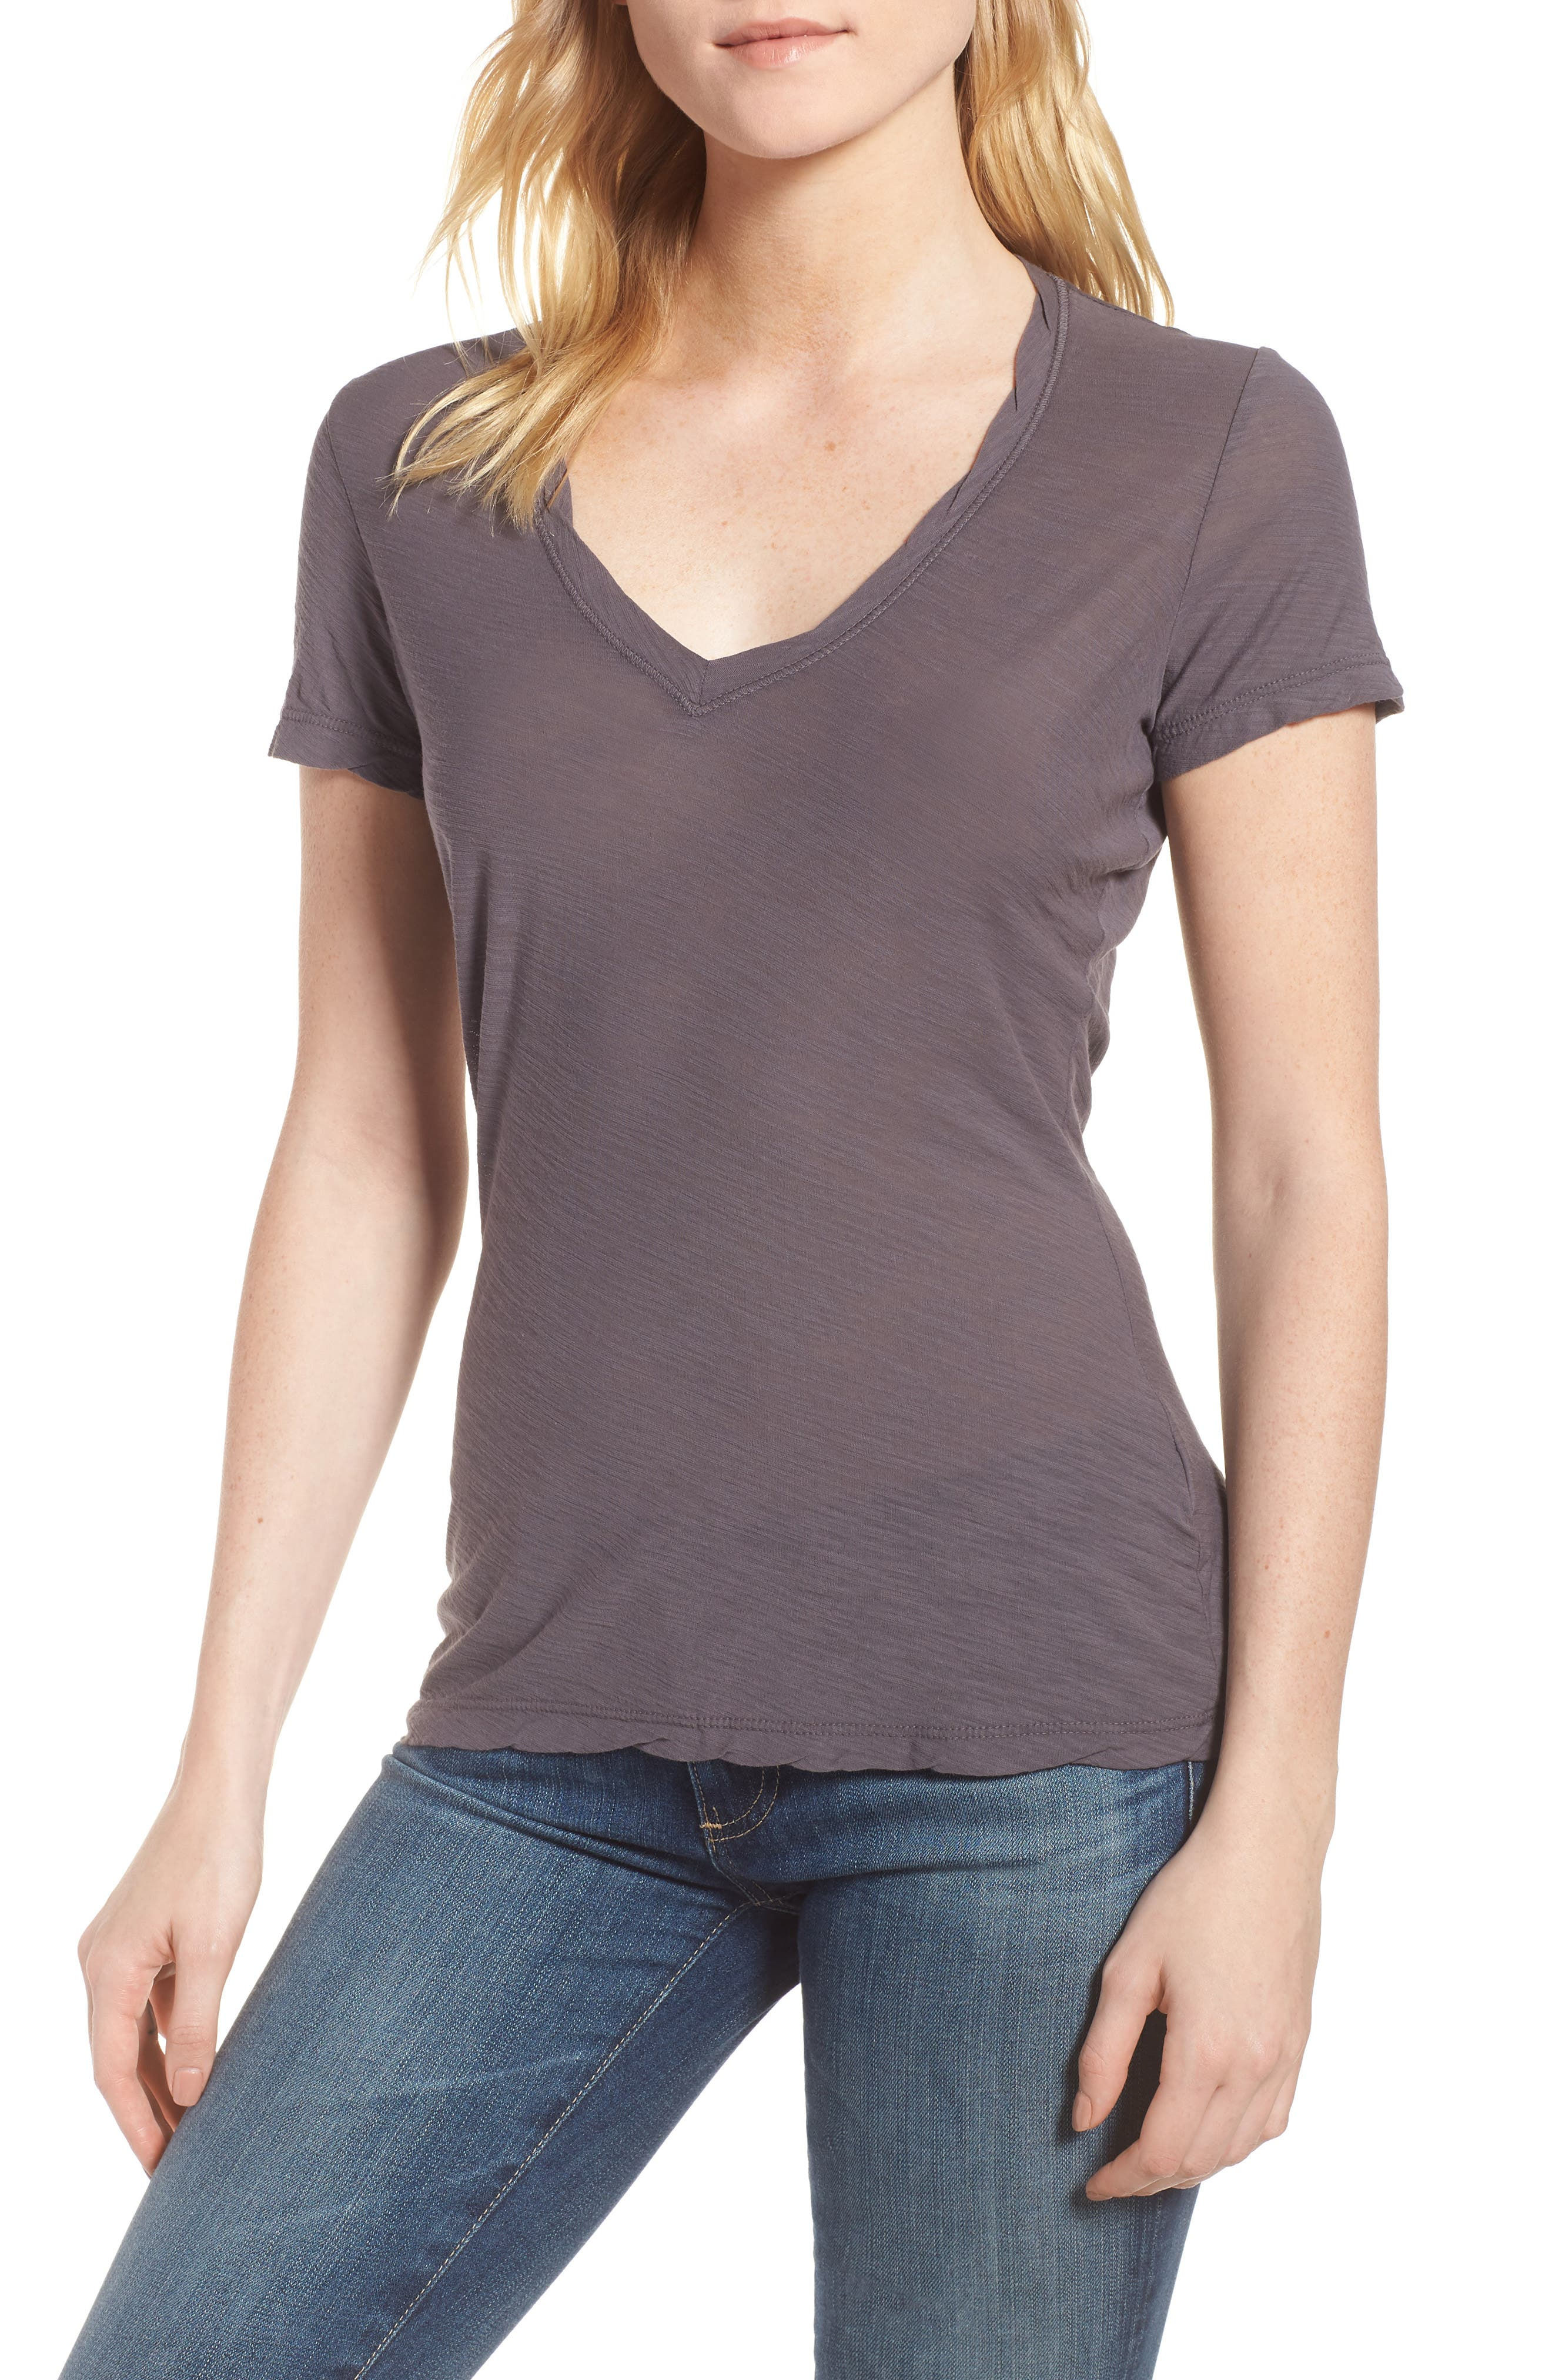 Alternate Image 1 Selected - James Perse Slub Cotton V-Neck Tee